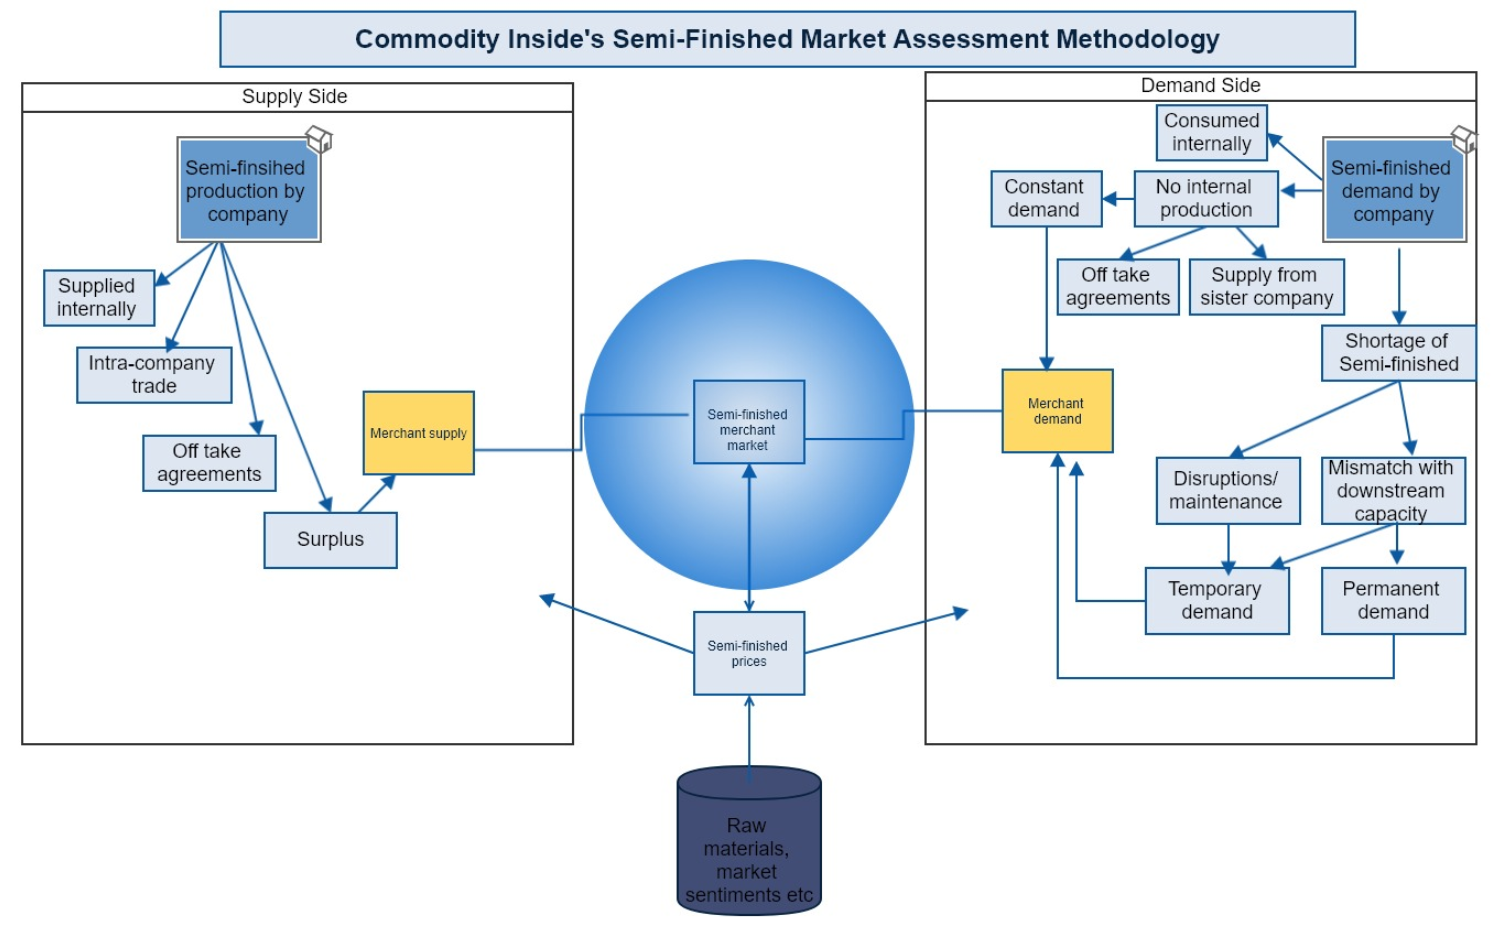 semi-finished market assessment _Commodity Inside Methodology